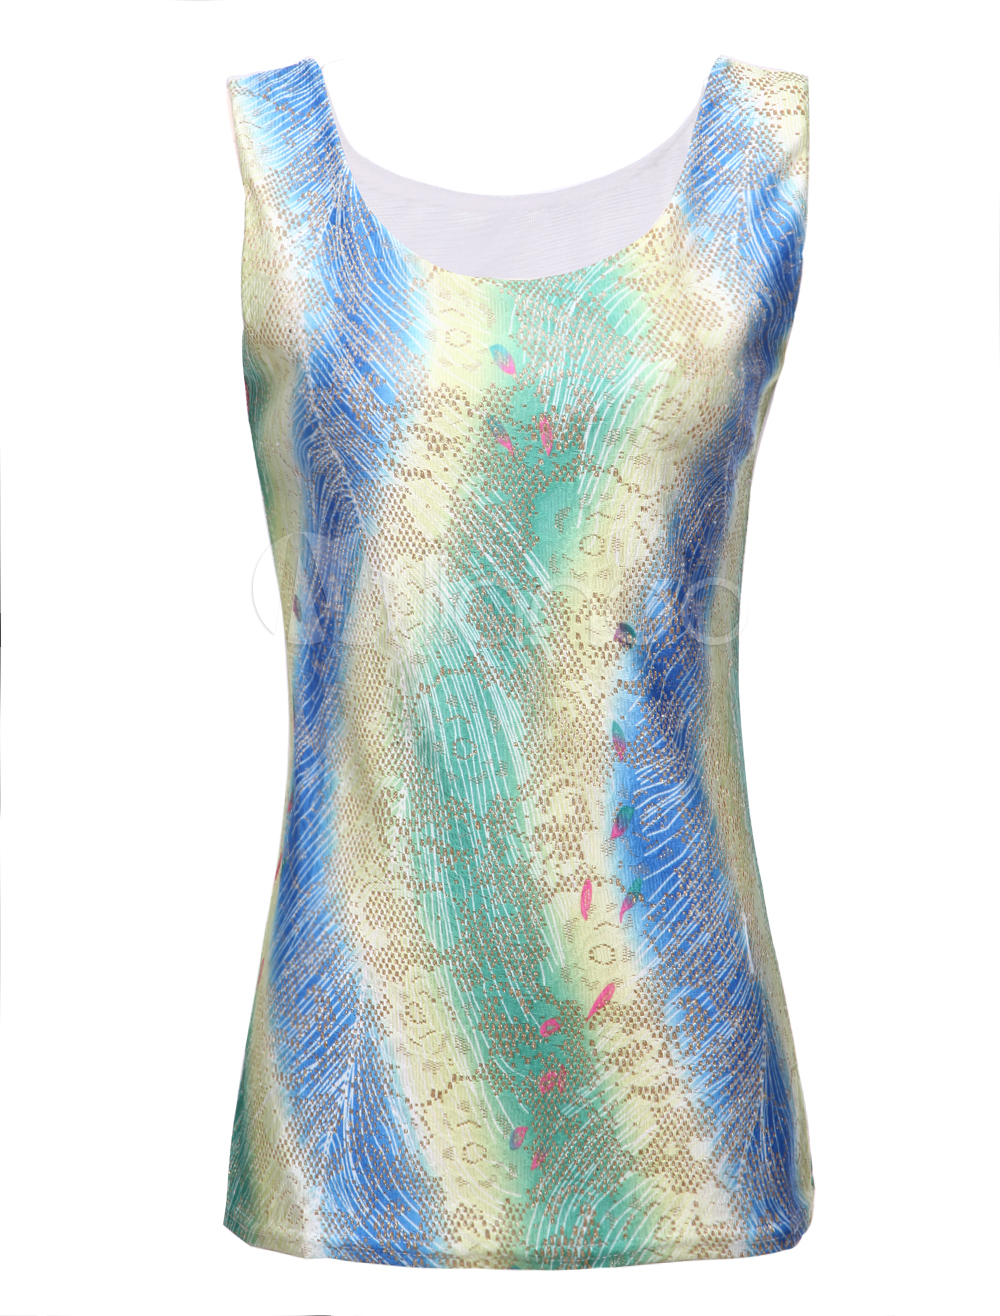 Quality multi color tie dye shaping sleeveless tee shirt for Tie dye sleeveless shirts